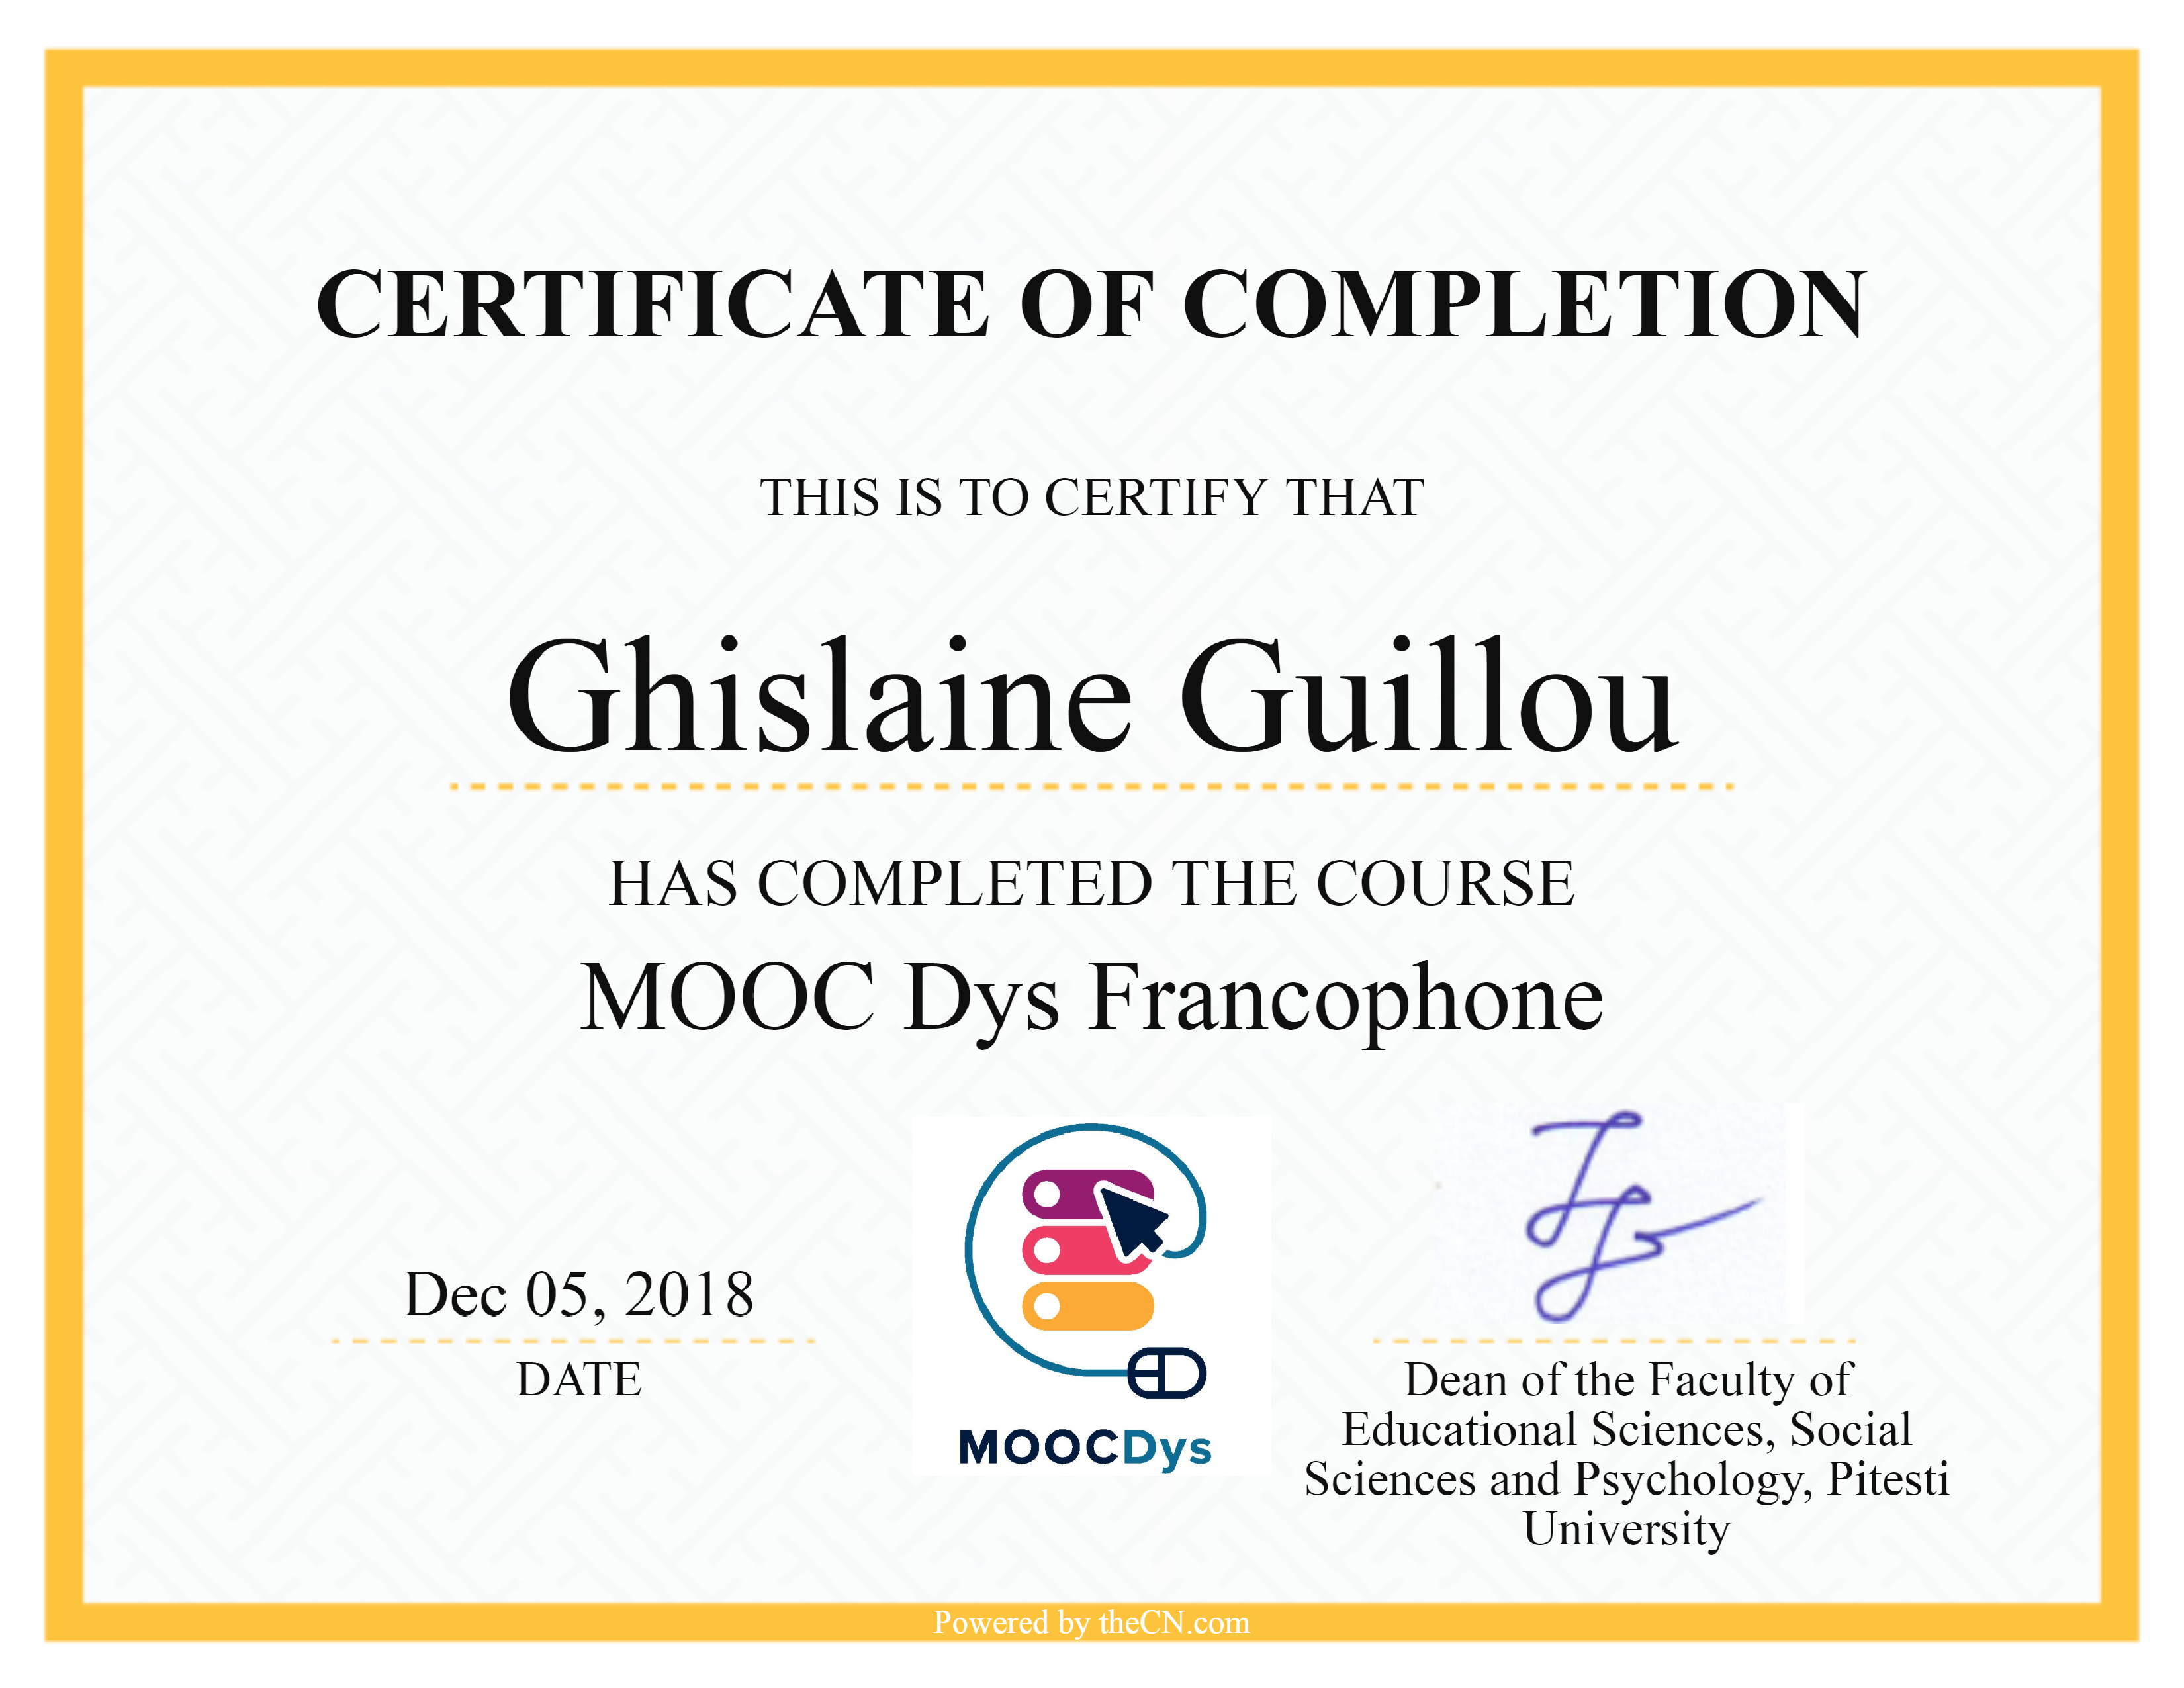 Course Completion Certificate.png